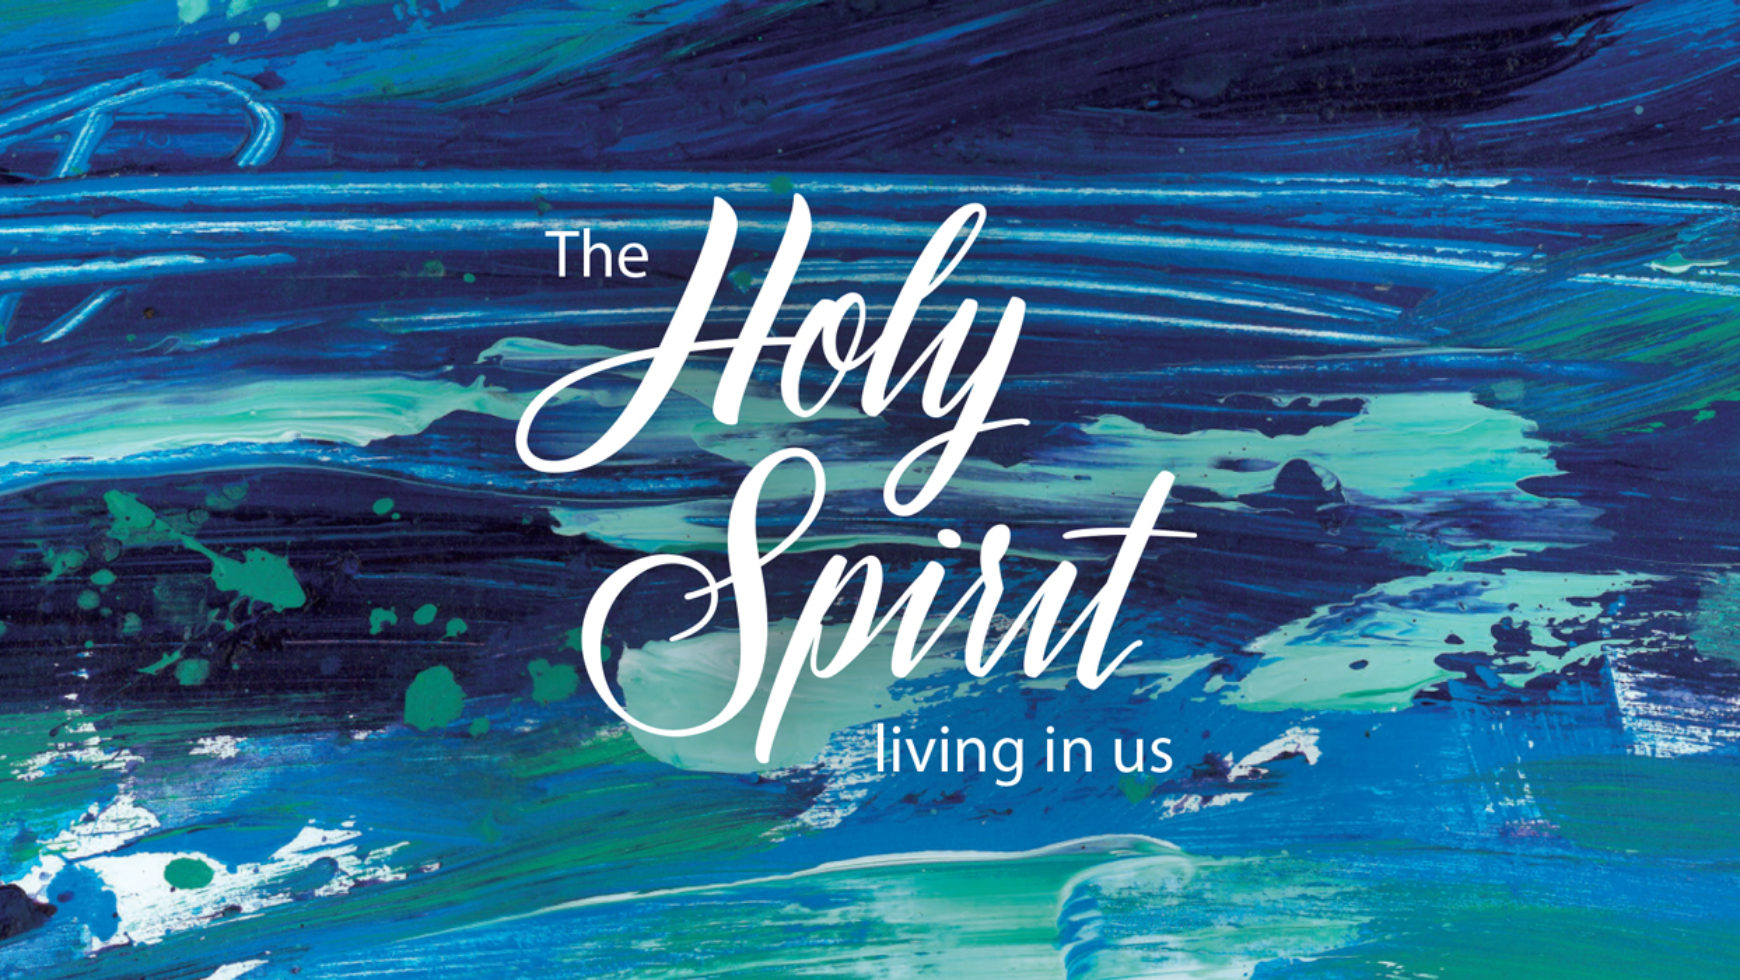 Holy Spirit is dweling in us forever